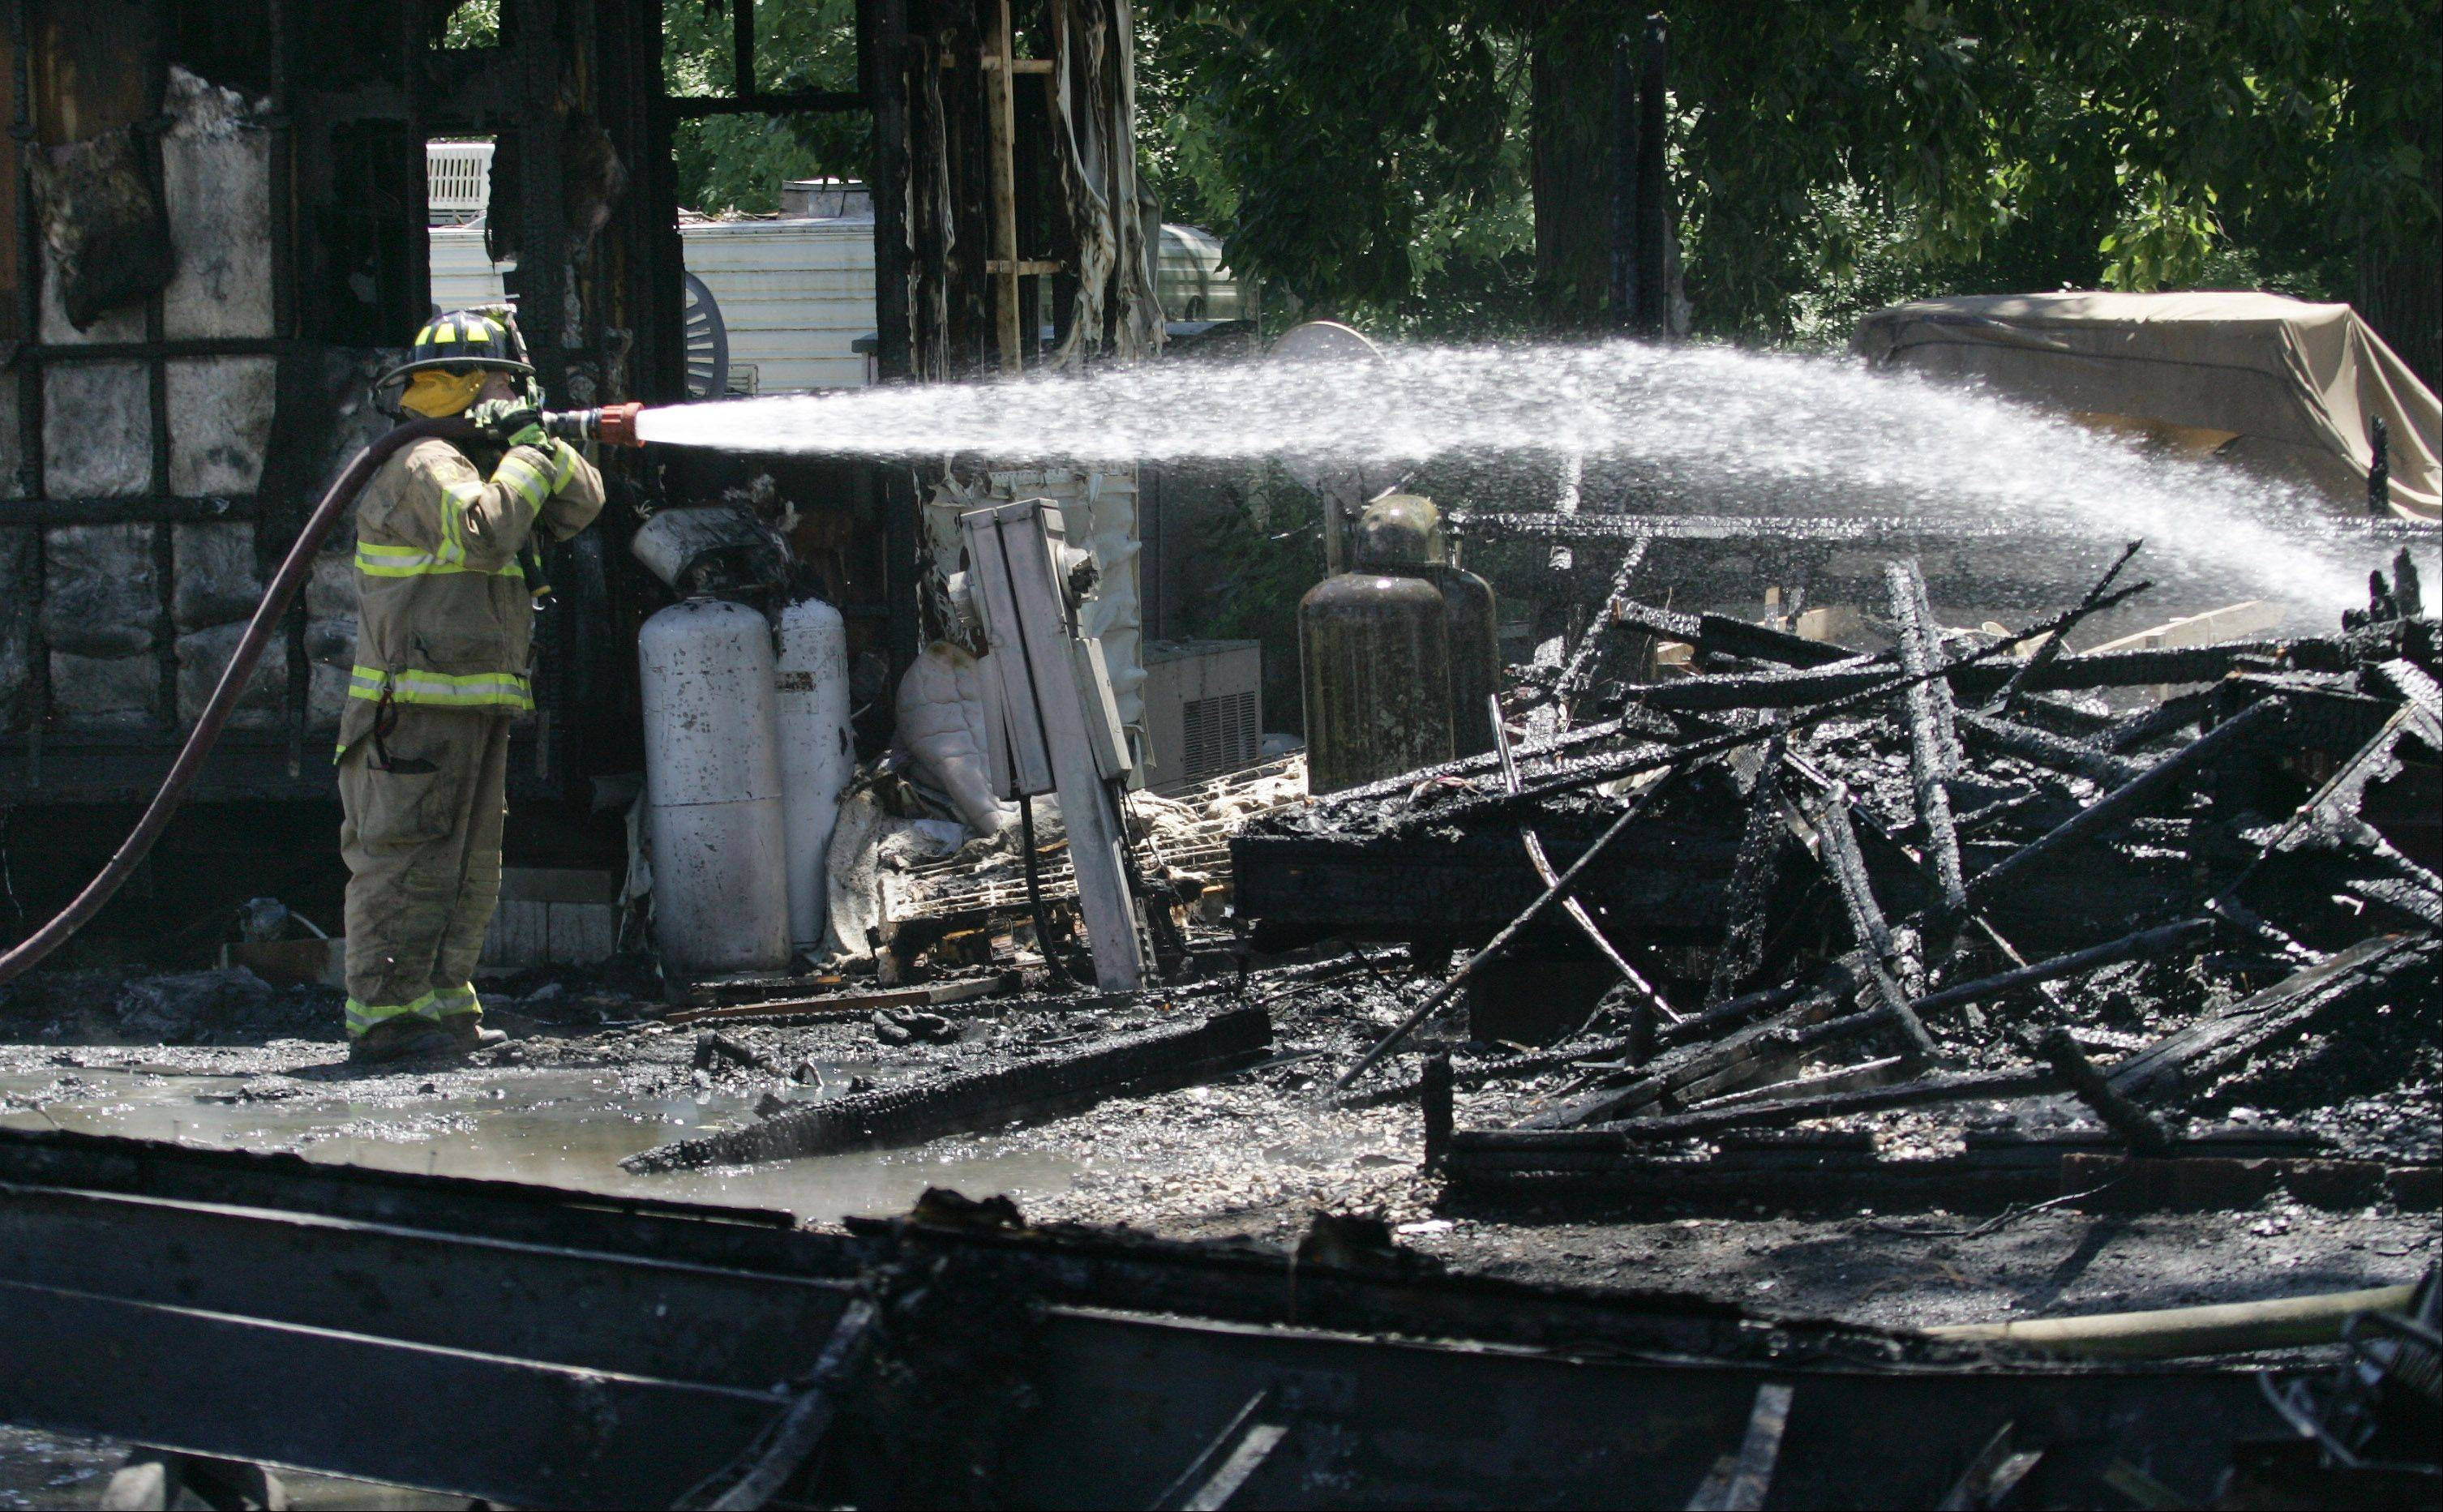 Gilbert R. Boucher II / gboucher@dailyherald.comAn Antioch firefighter sprays waters on the remains of one mobile home as he joined other Lake County firefighters battling a fire involving multiple mobile homes in Grass Lake Marina & R.V. Park Tuesday near Antioch. Fire departments from Antioch, Lake Villa, Fox Lake and Gurnee assisted in the multiple alarm fire.